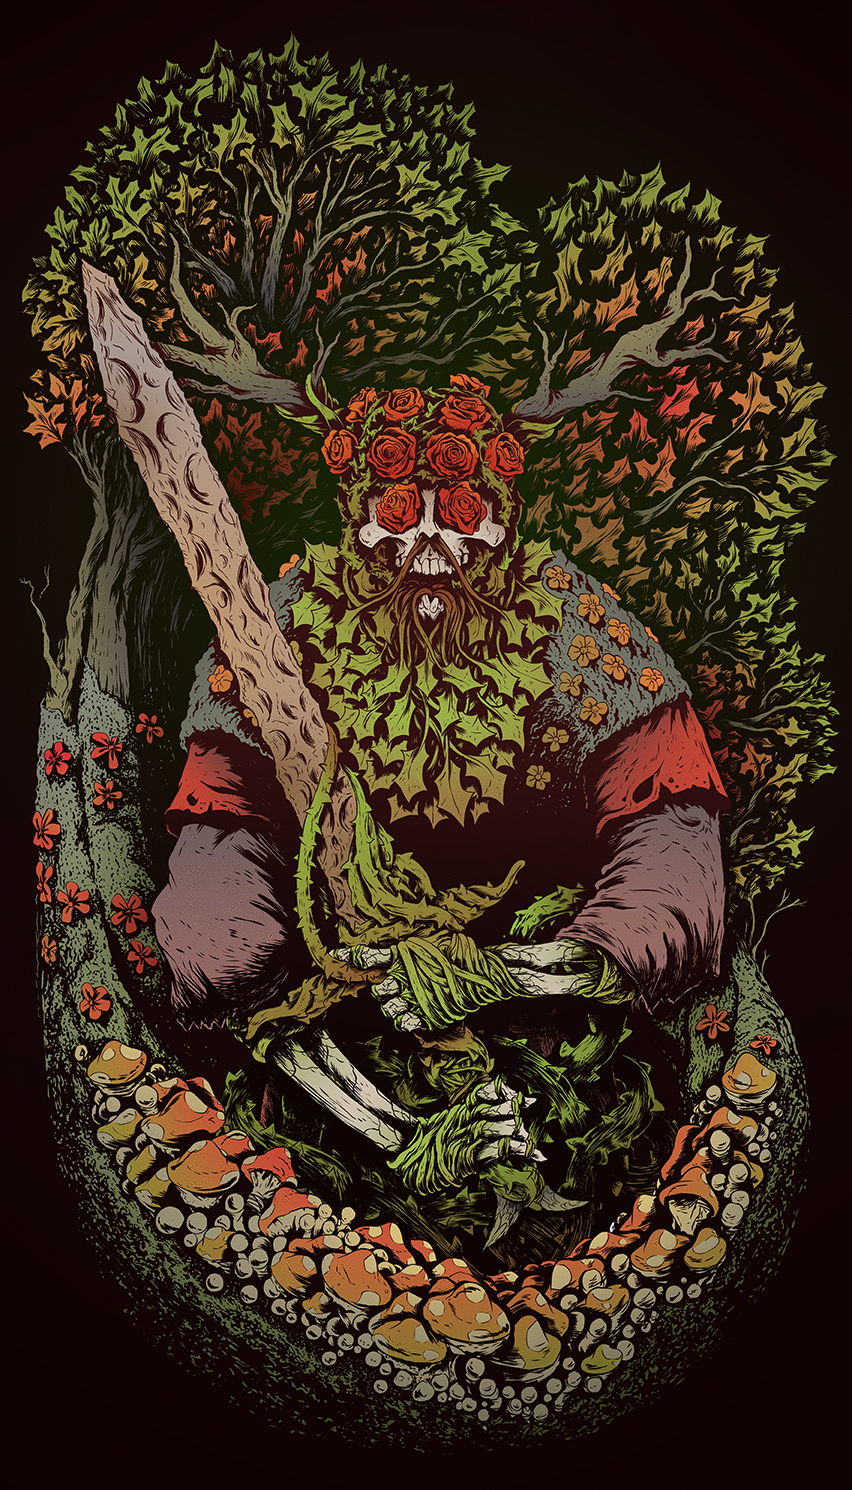 greenman-finished-small